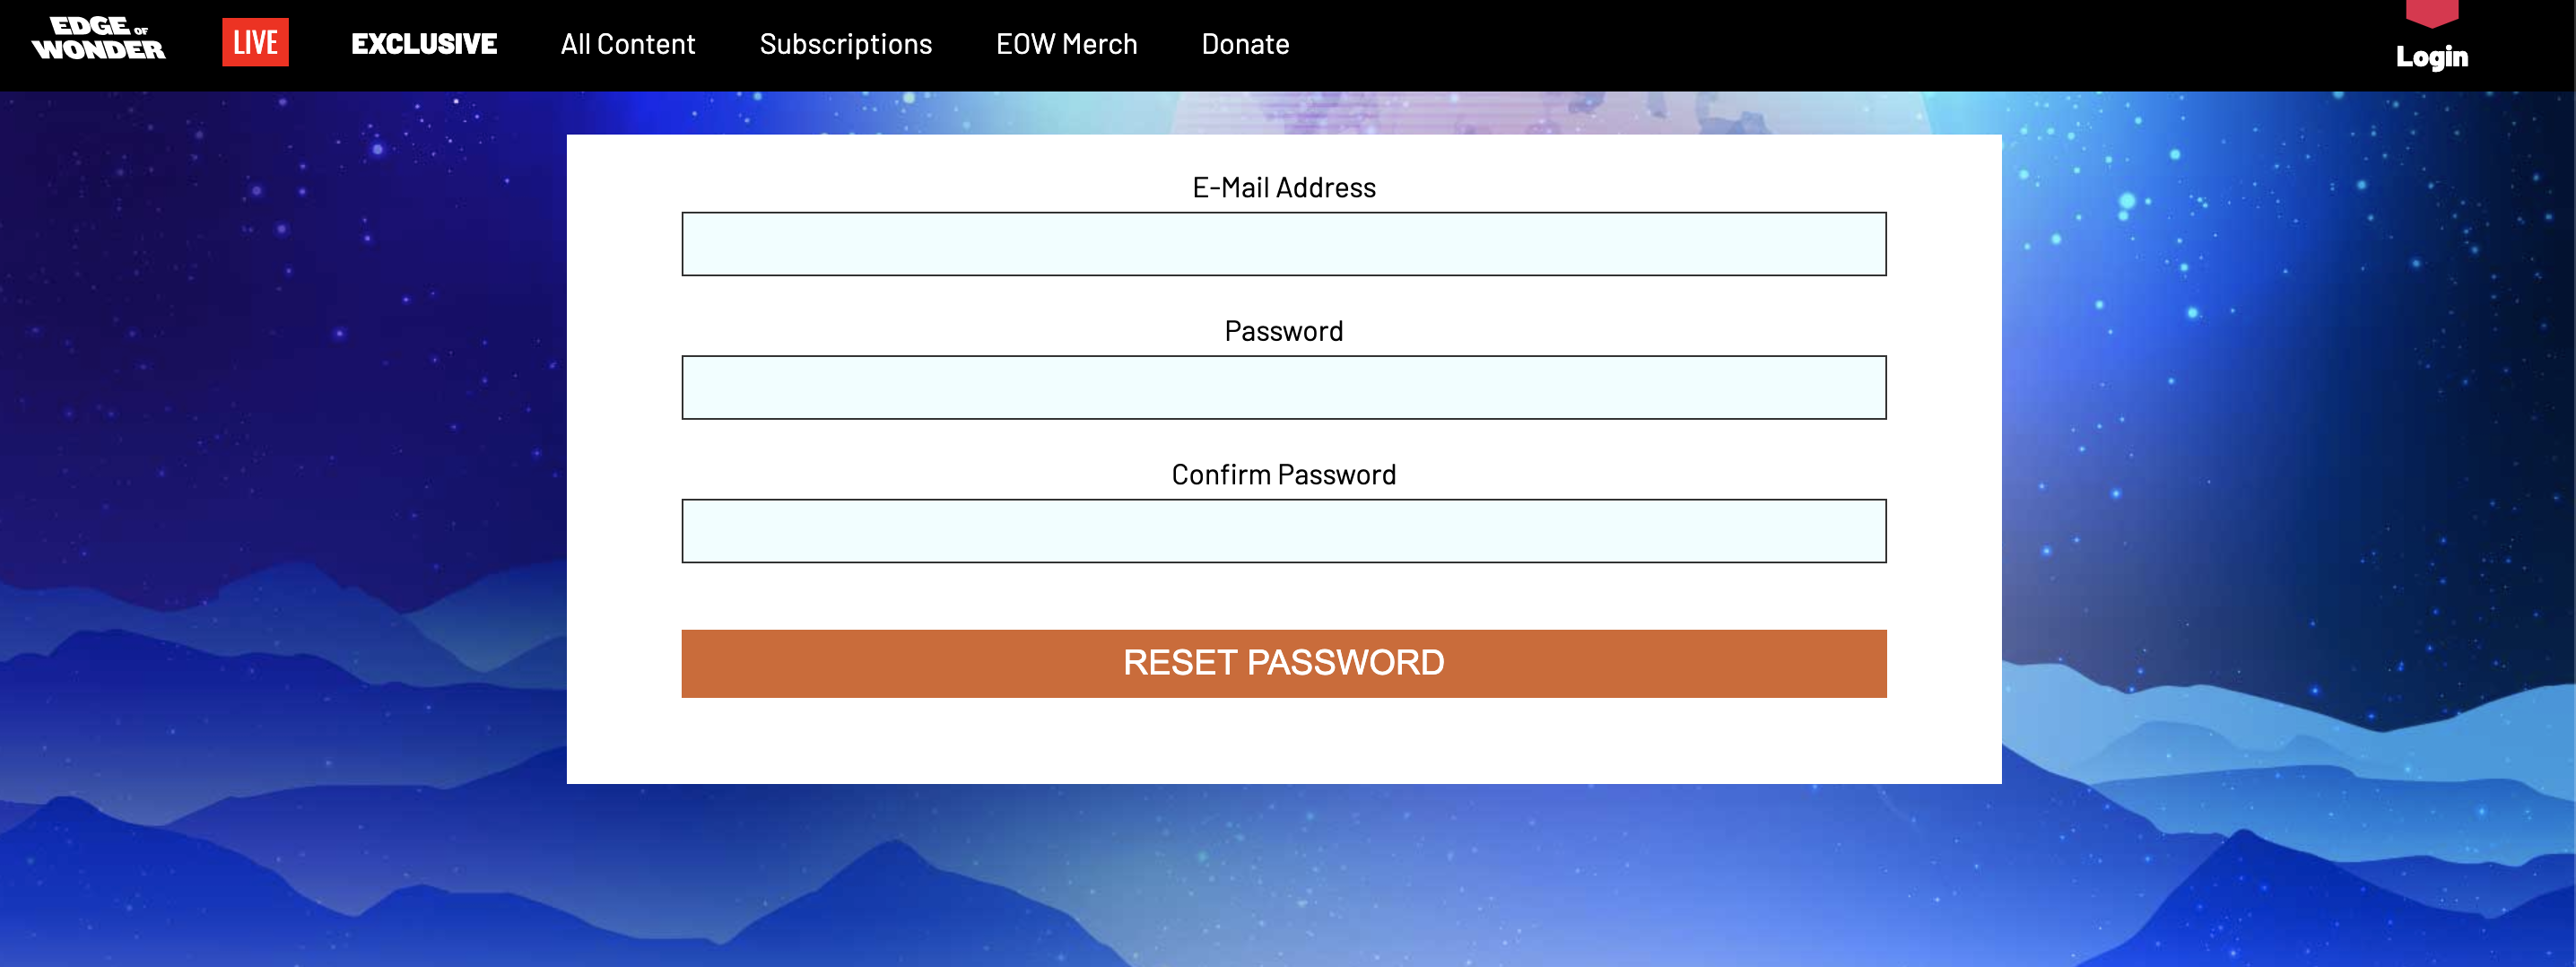 Reset_password_page.png